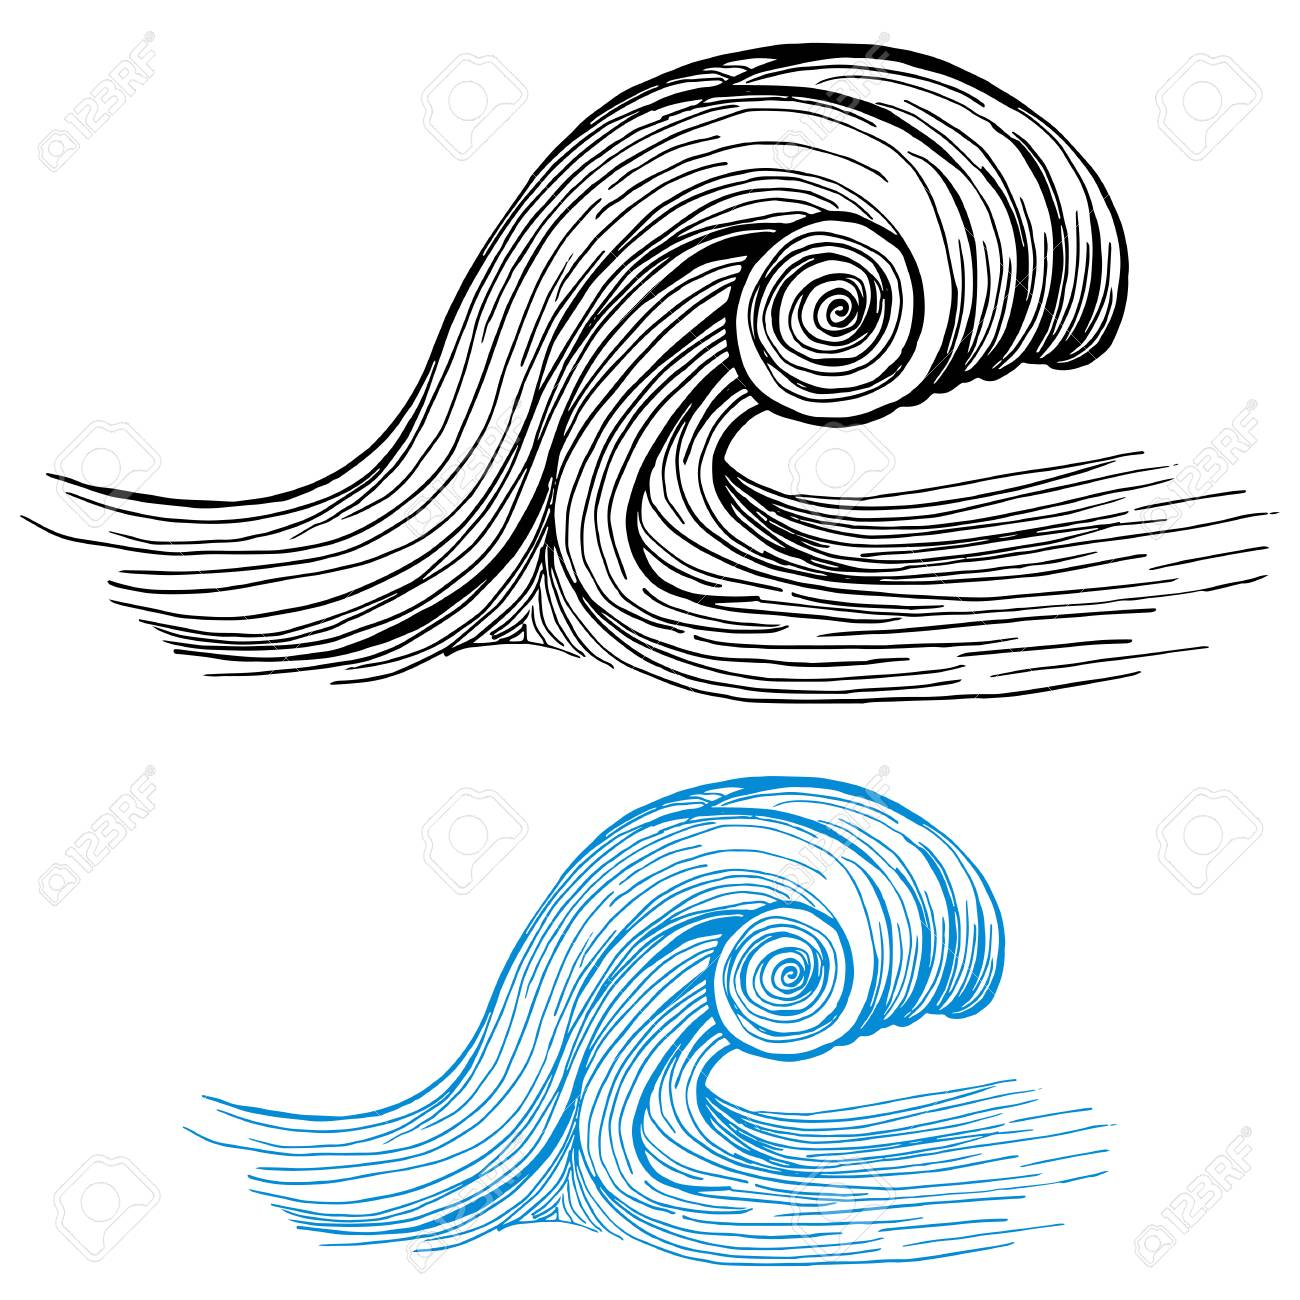 An image of a Ocean Wave Drawing Design Element isolated on white